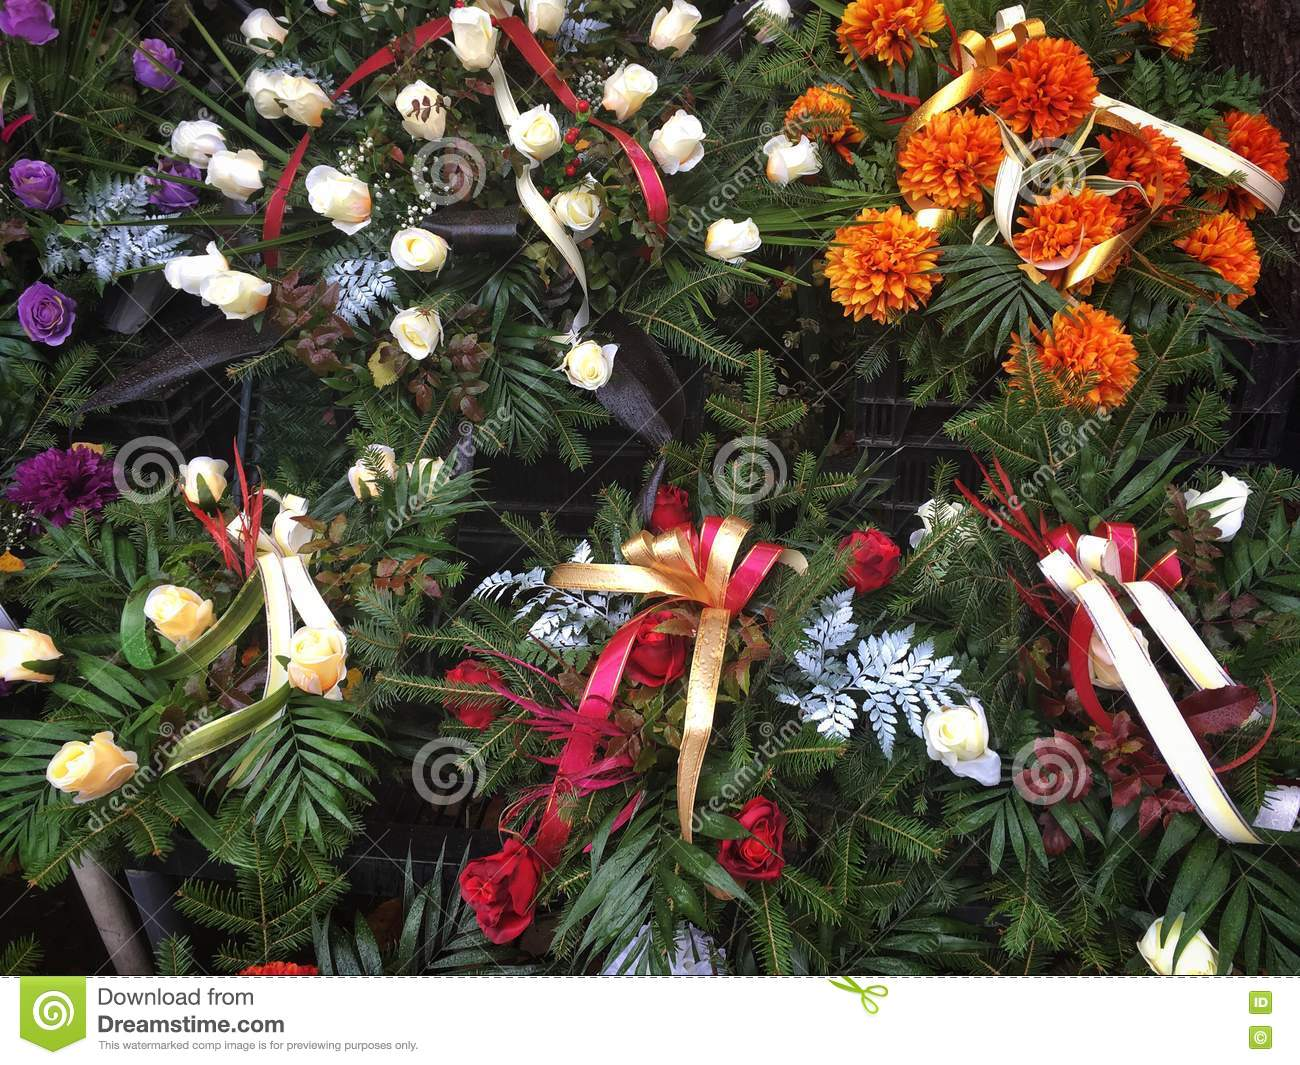 Funeral flowers stock photo image of chrysanthemum polish 81978932 funeral flowers izmirmasajfo